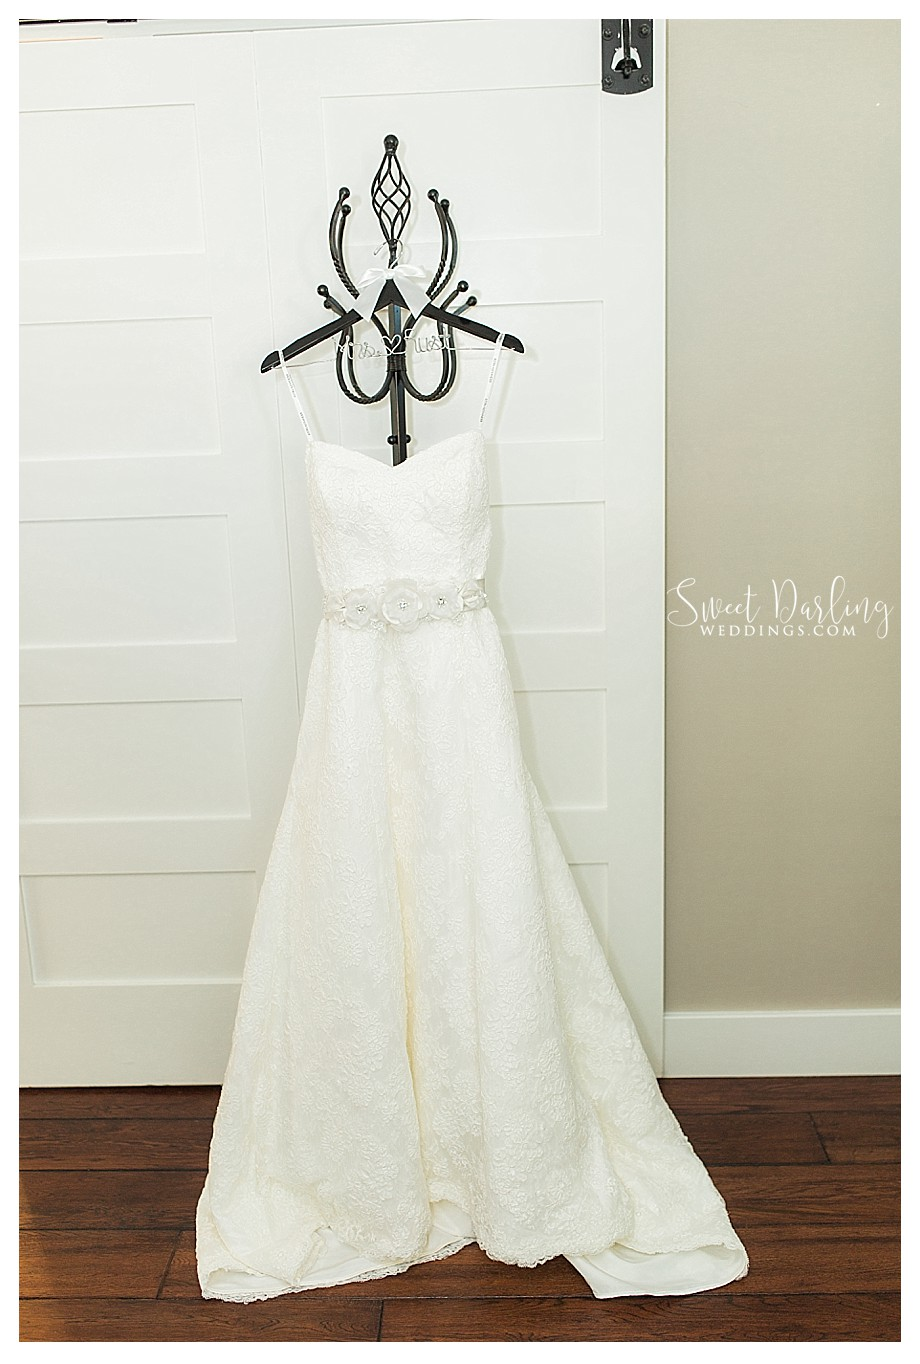 wedding dress on personalized wooden hanger